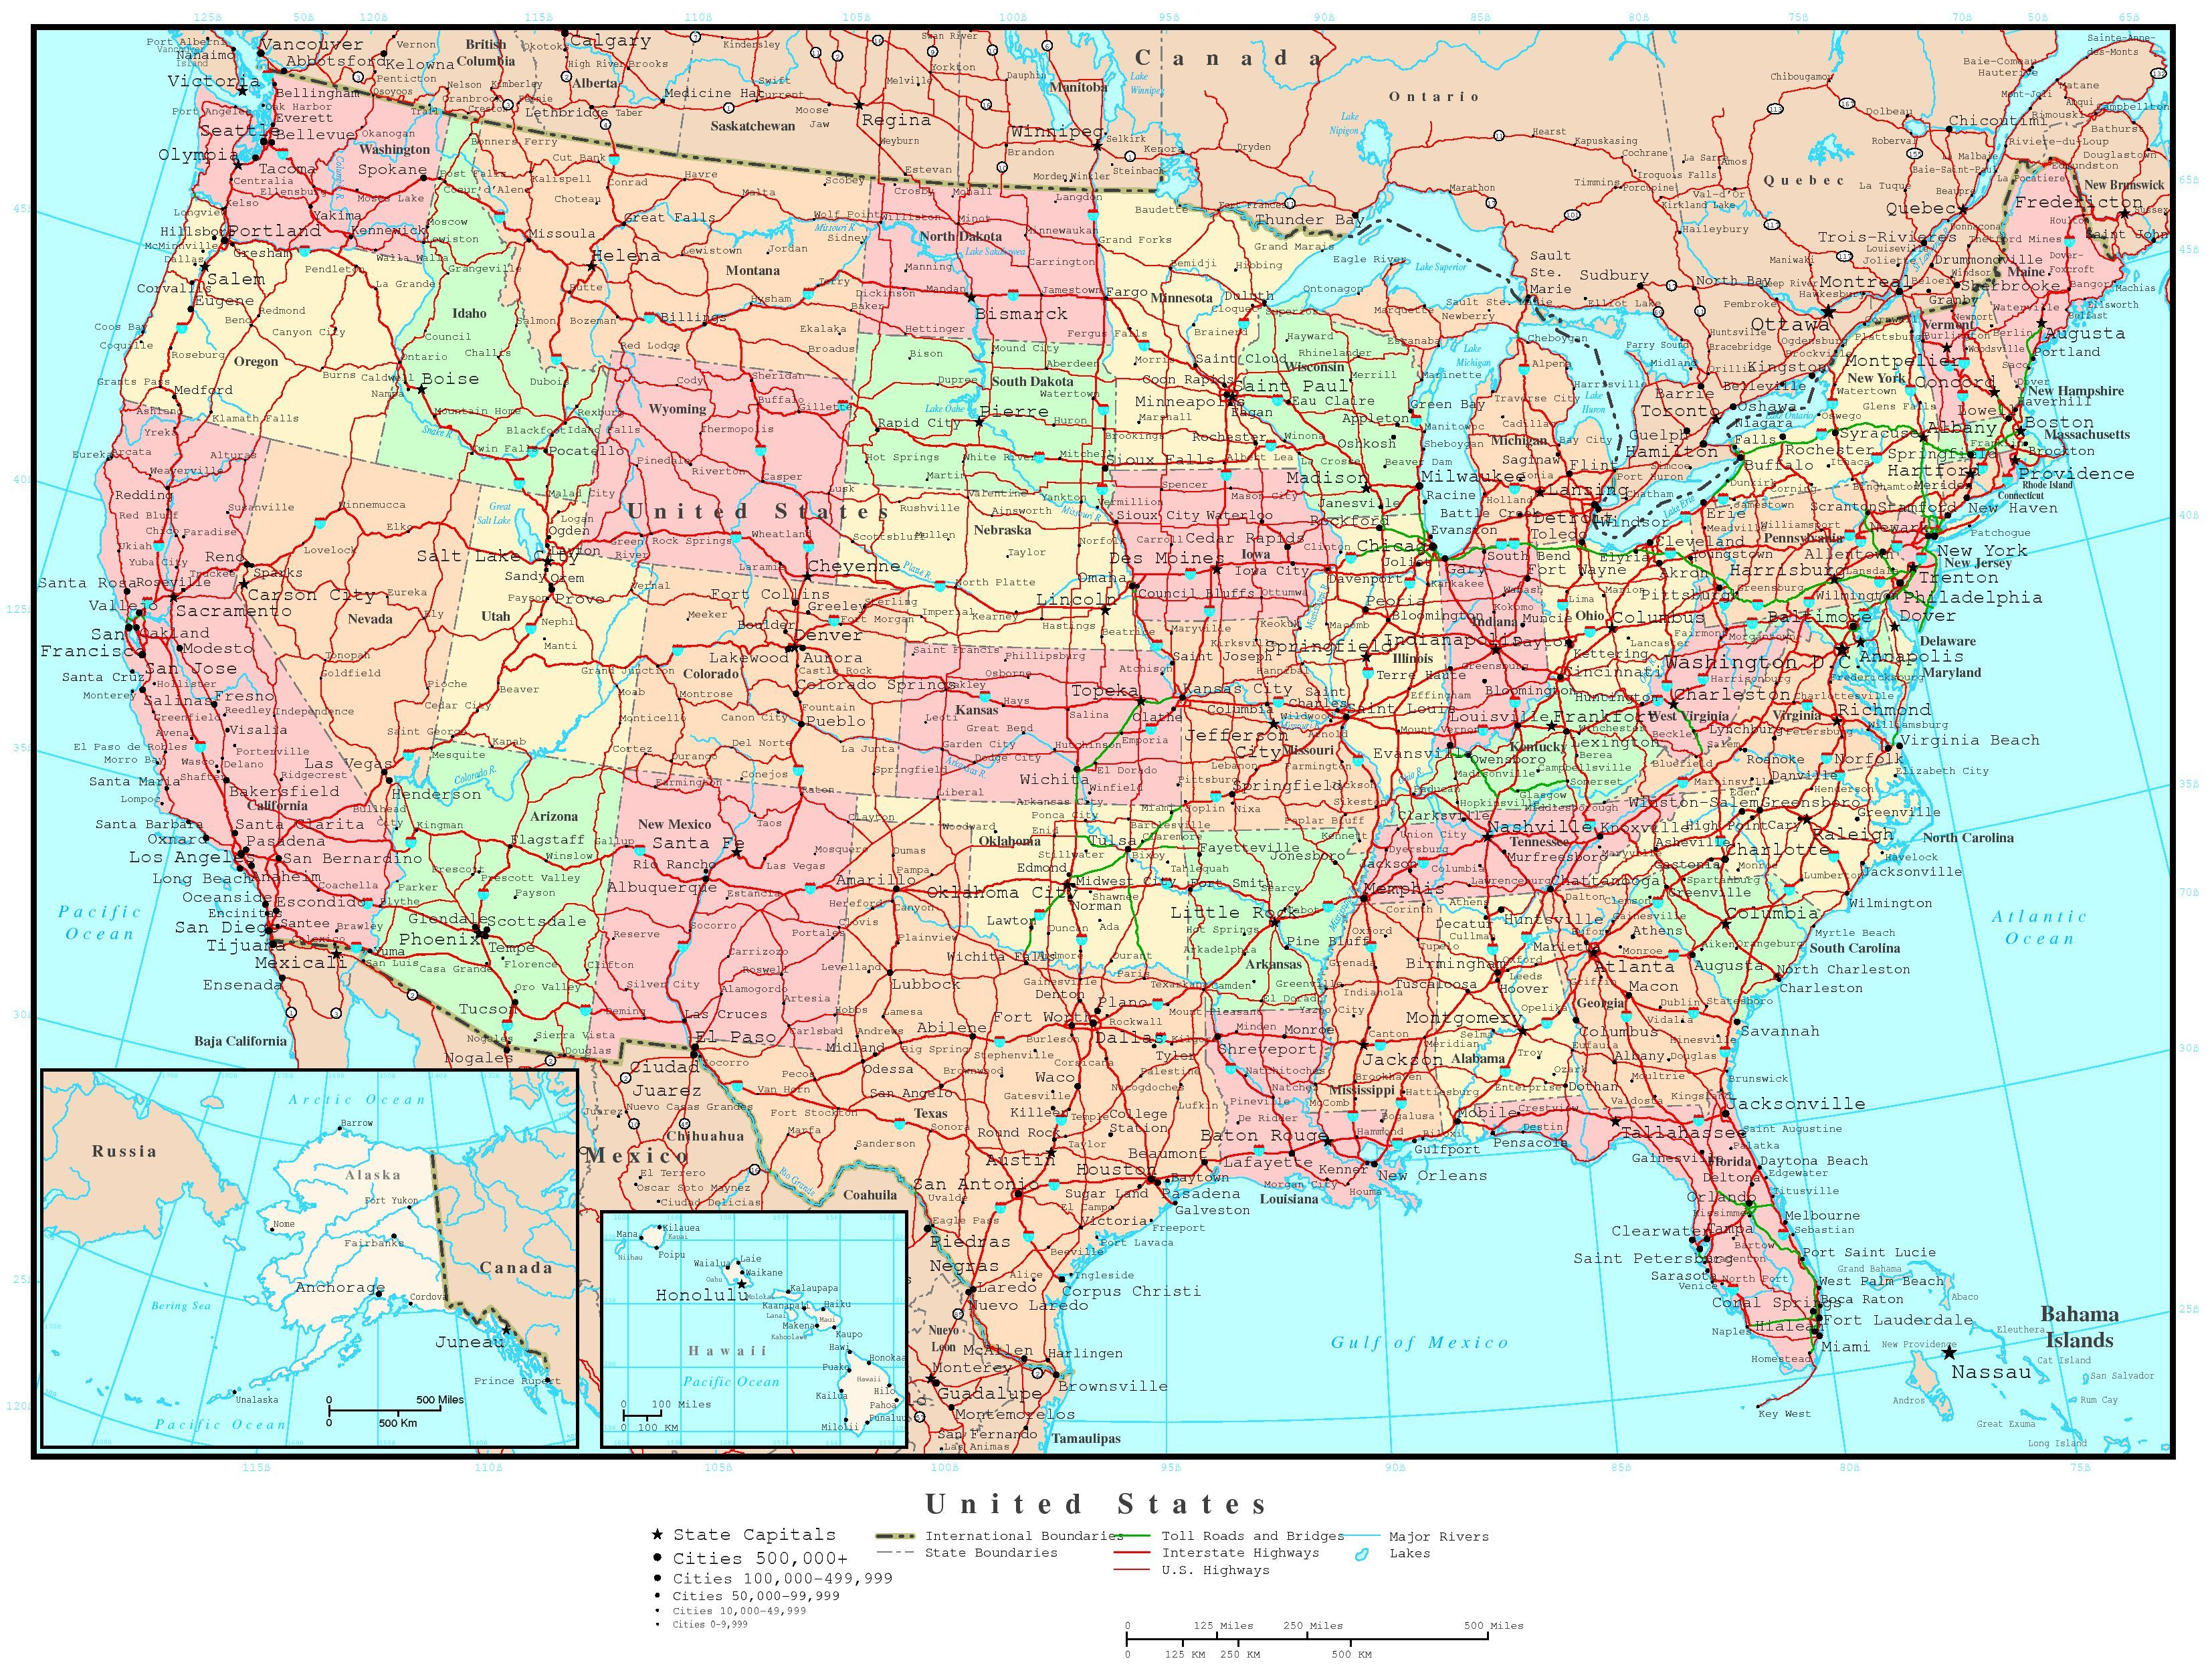 Httpssmediacacheakpinimgcomoriginals - Usa map with cities and states